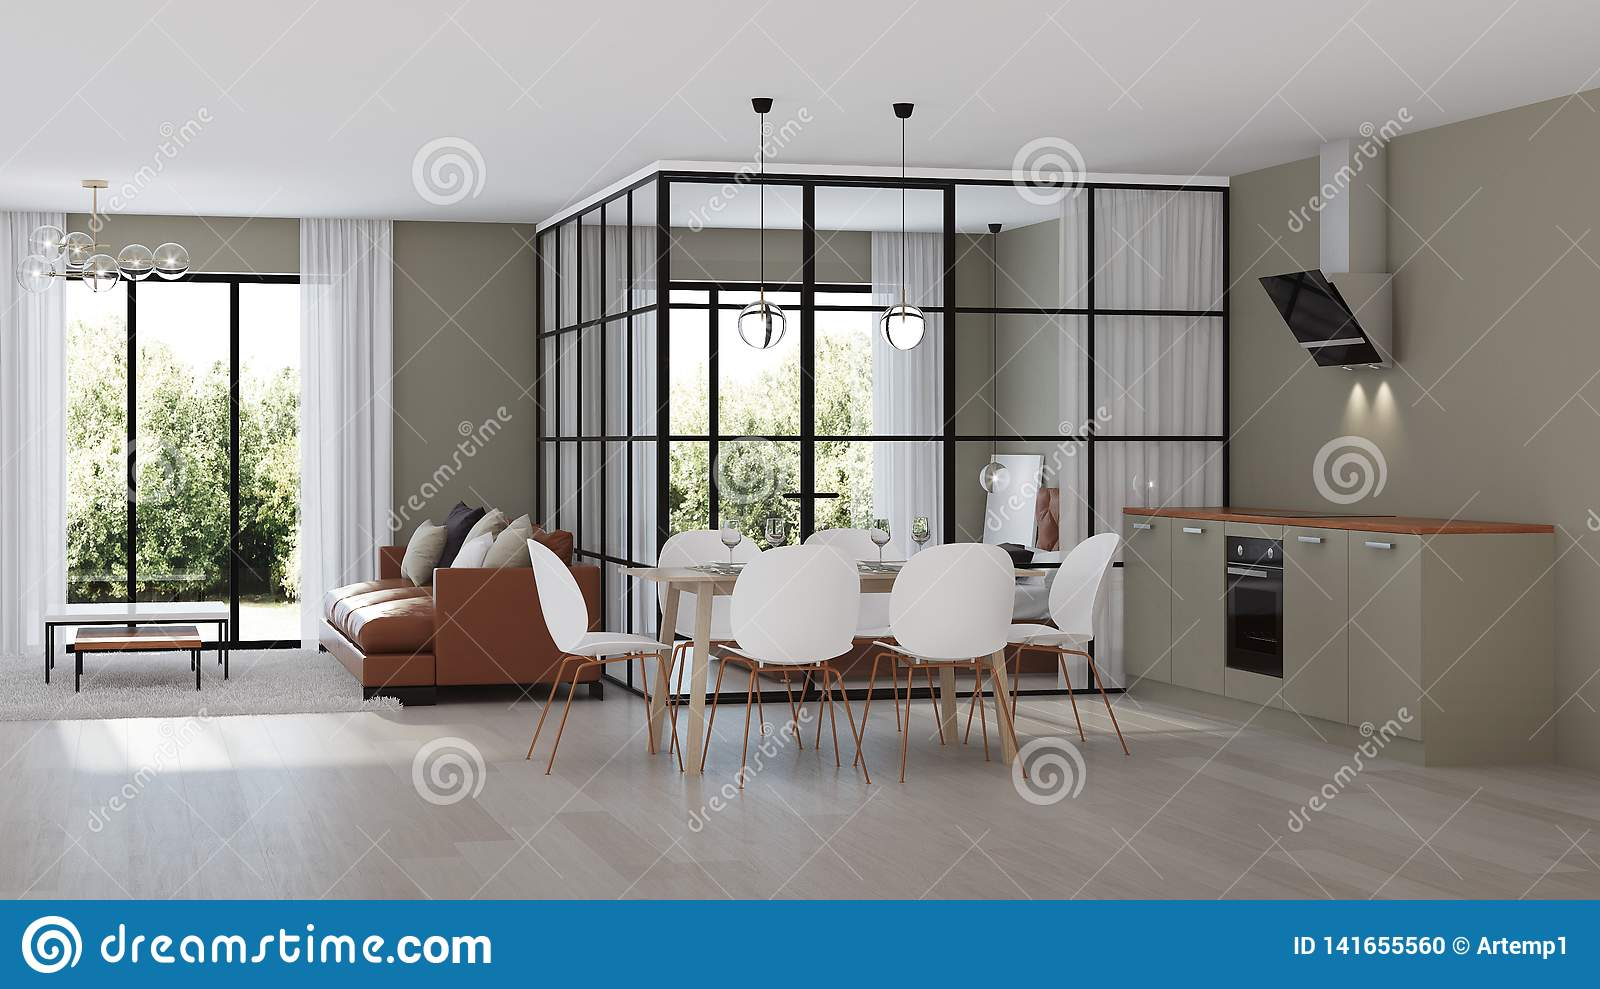 Modern House Interior Bedroom With Glass Partitions Stock Illustration Illustration Of Design House 141655560